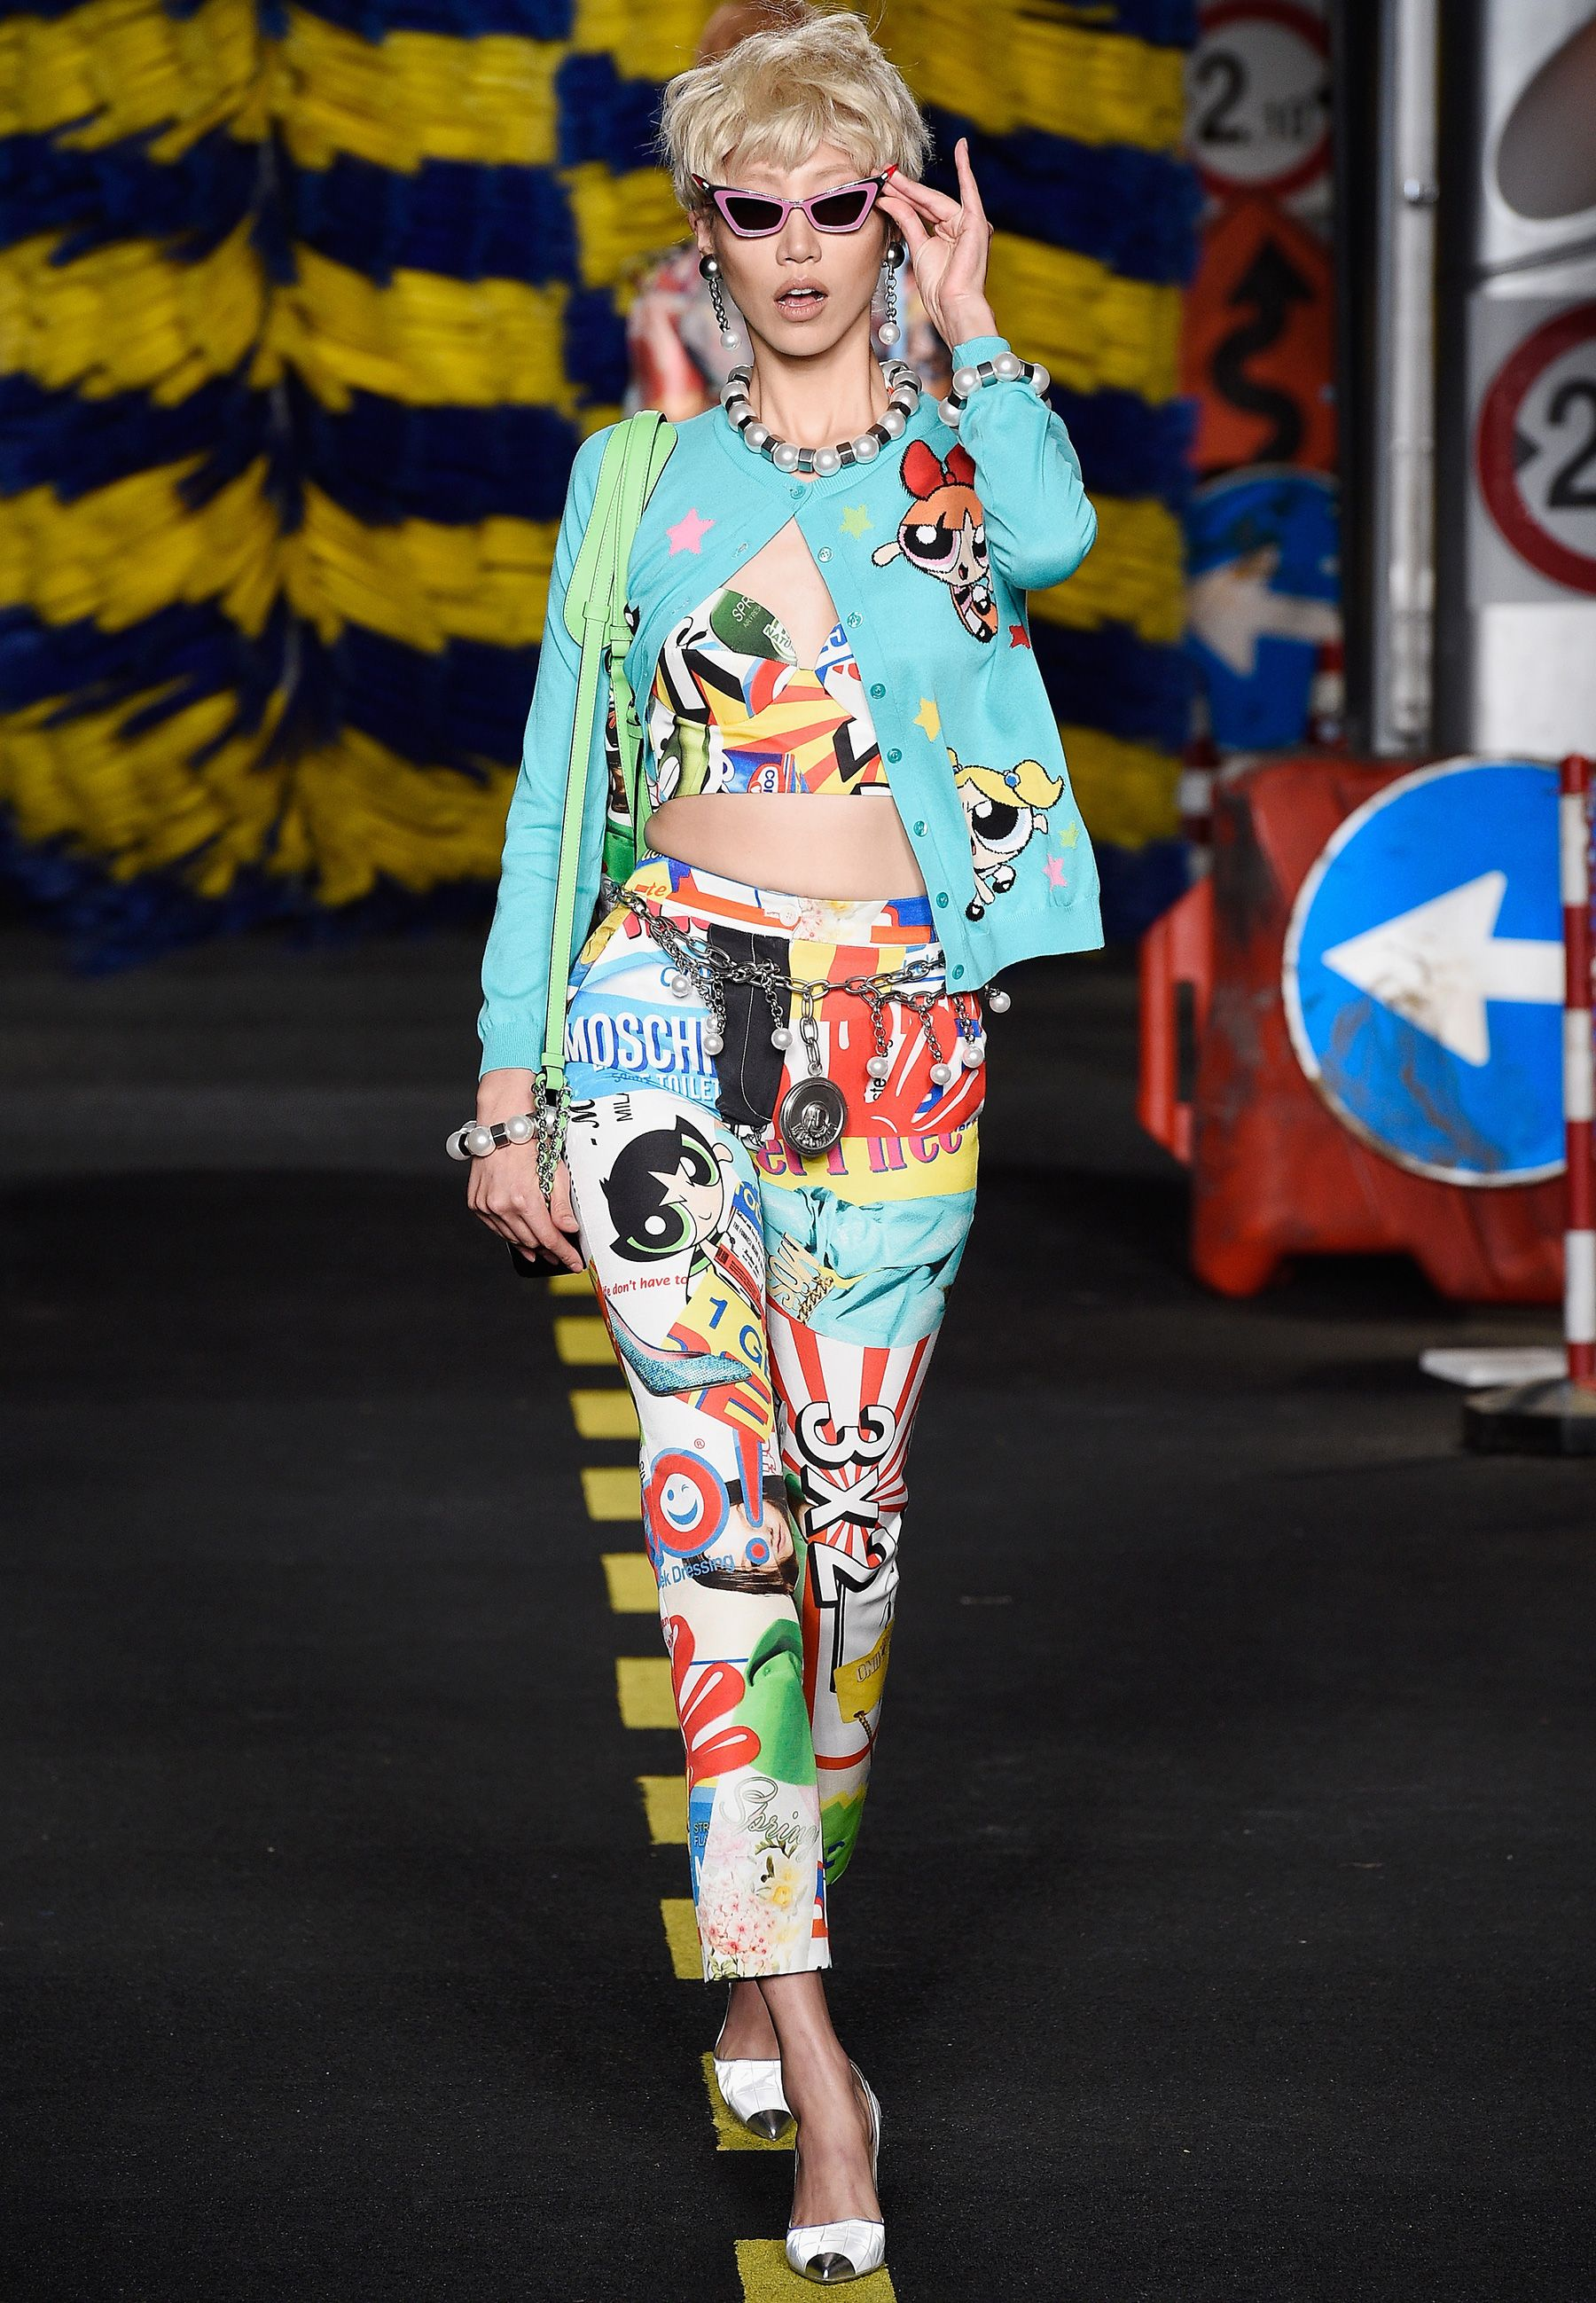 moschino-fashion-diaries-powerpuffgirls-2